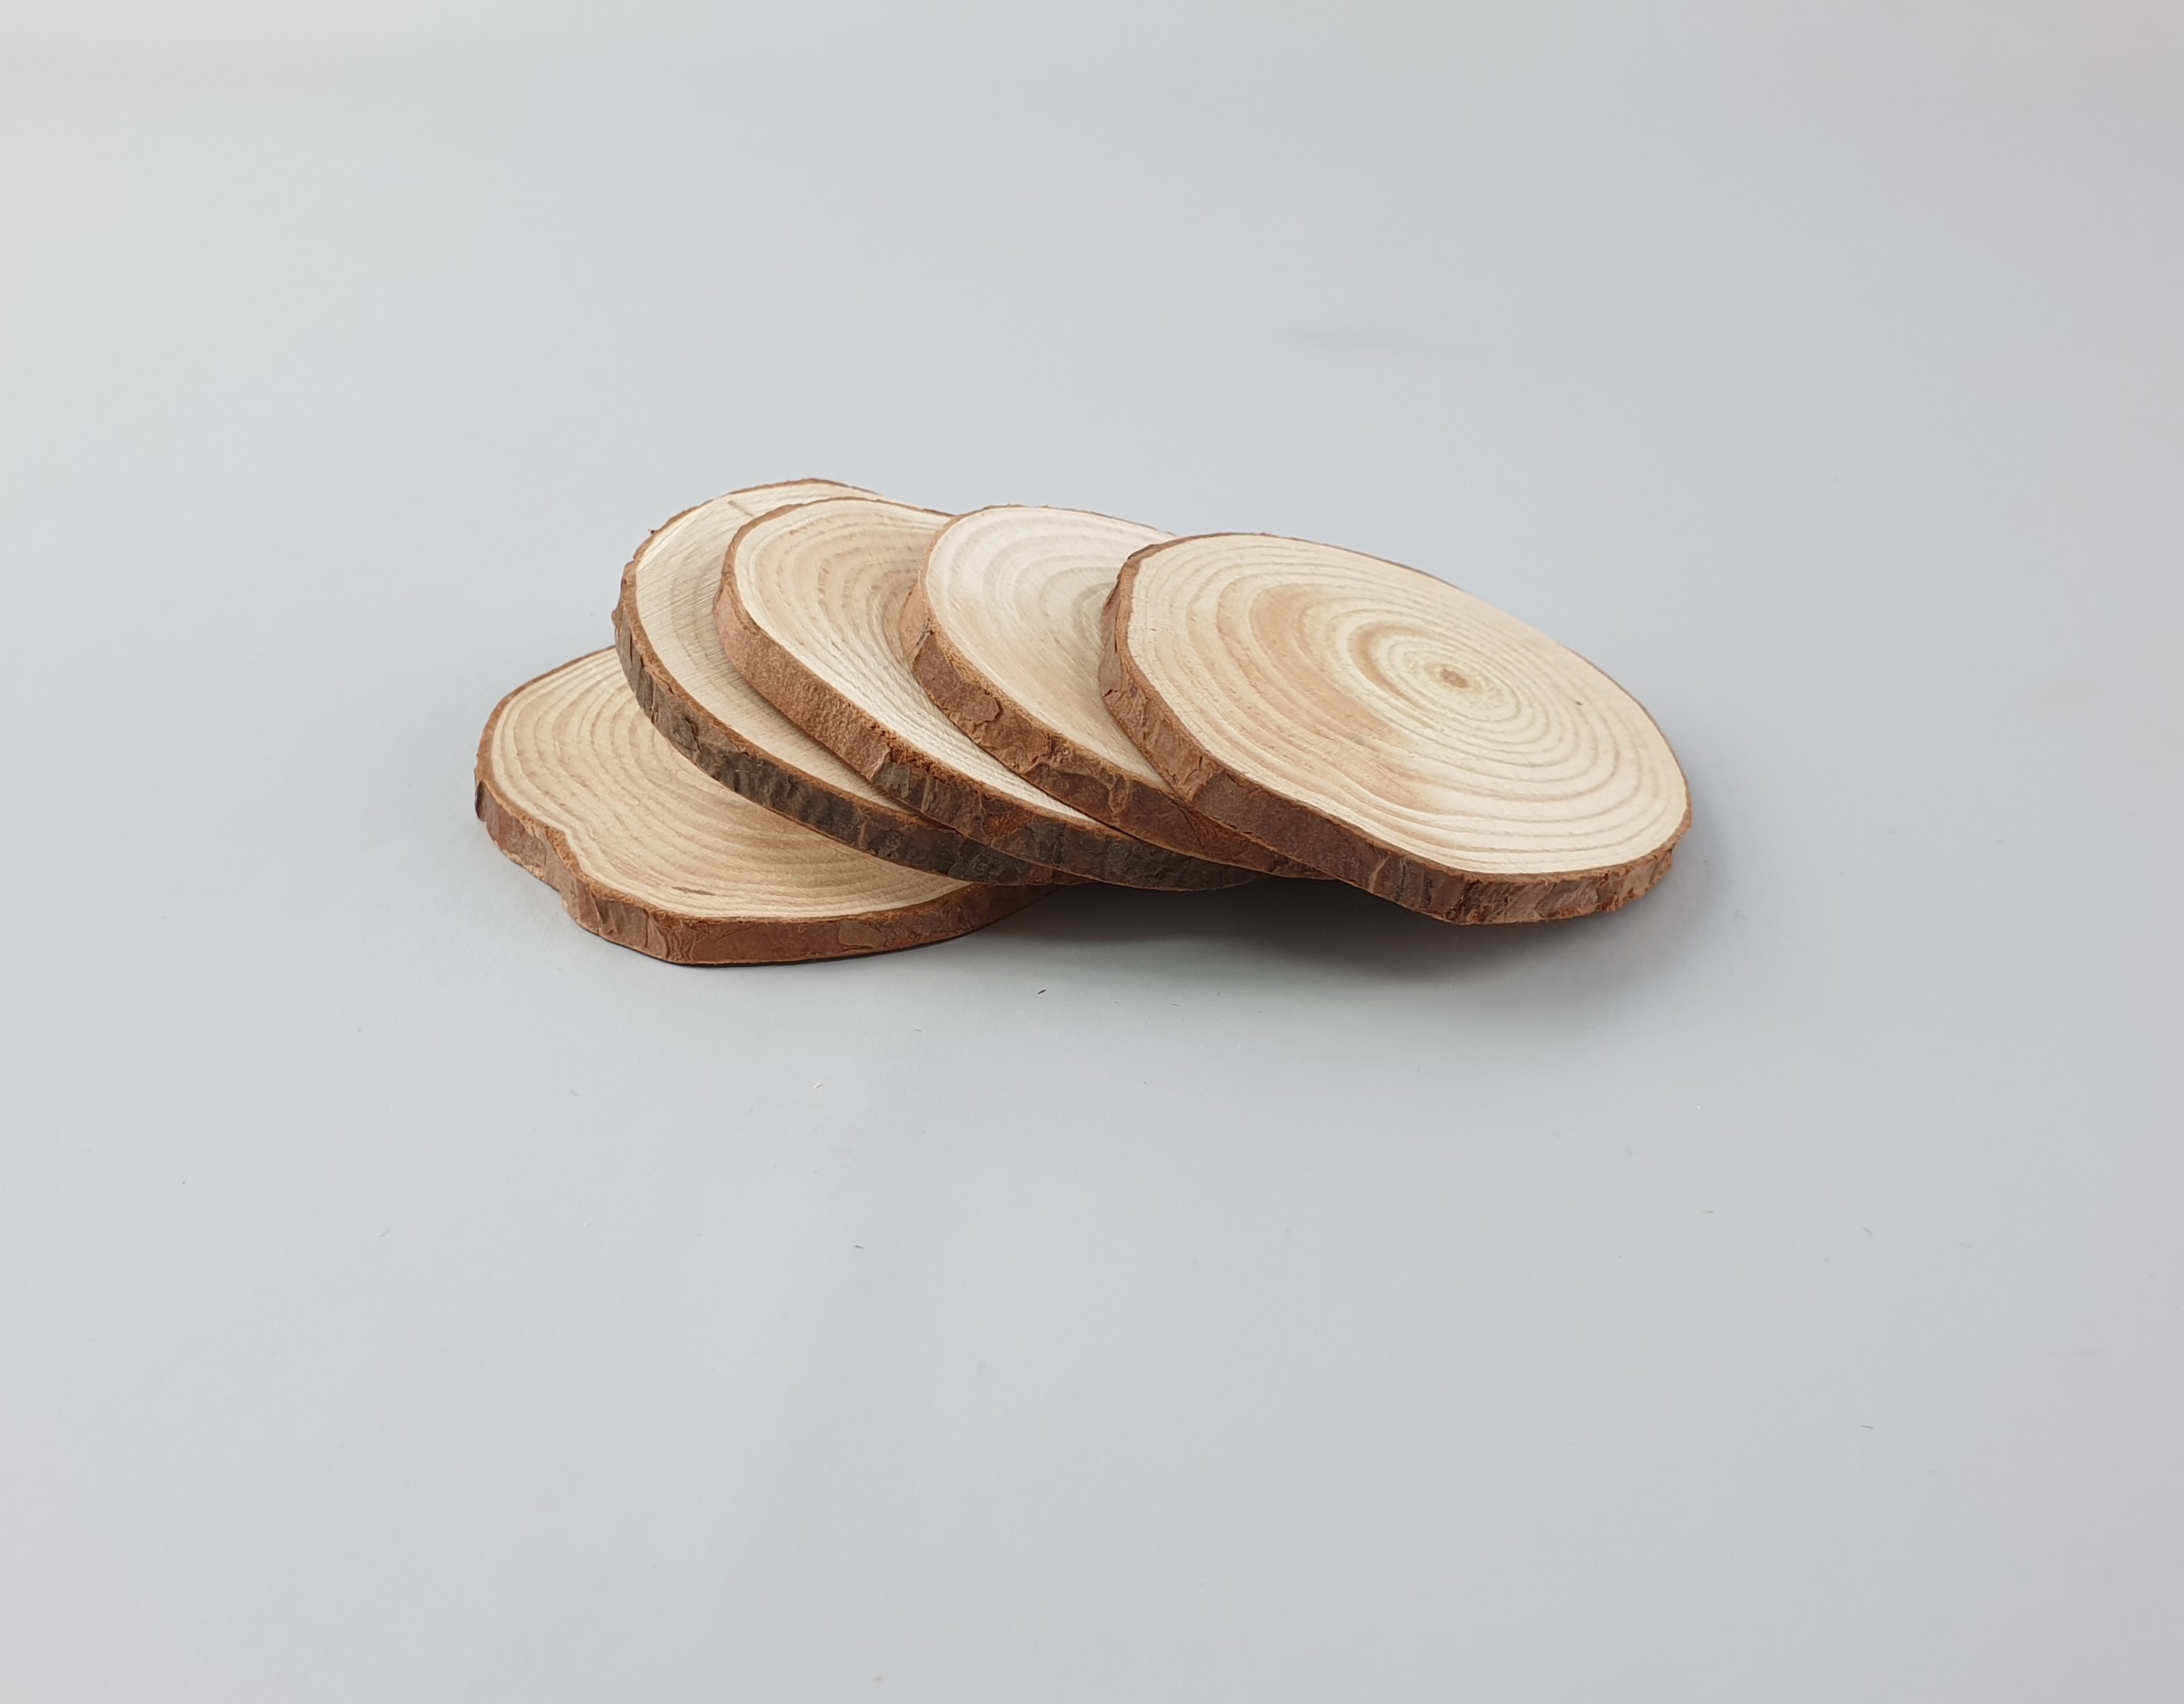 Slices of wood Ø3 - 5 cm. 5 pcs Ref.R780